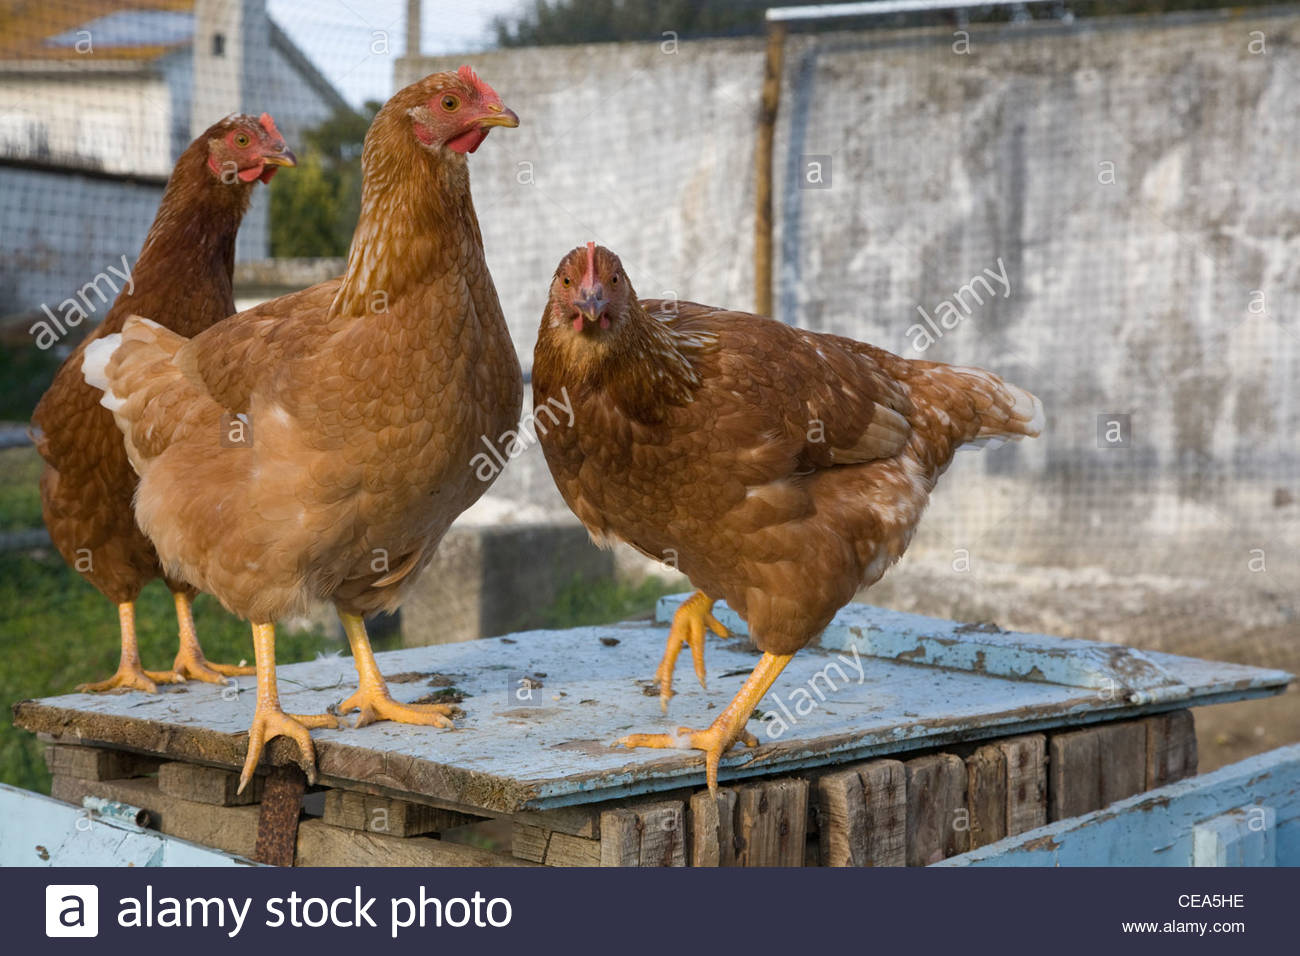 free range chickens on smallholding in Portugal standing on a wooden box - Stock Image